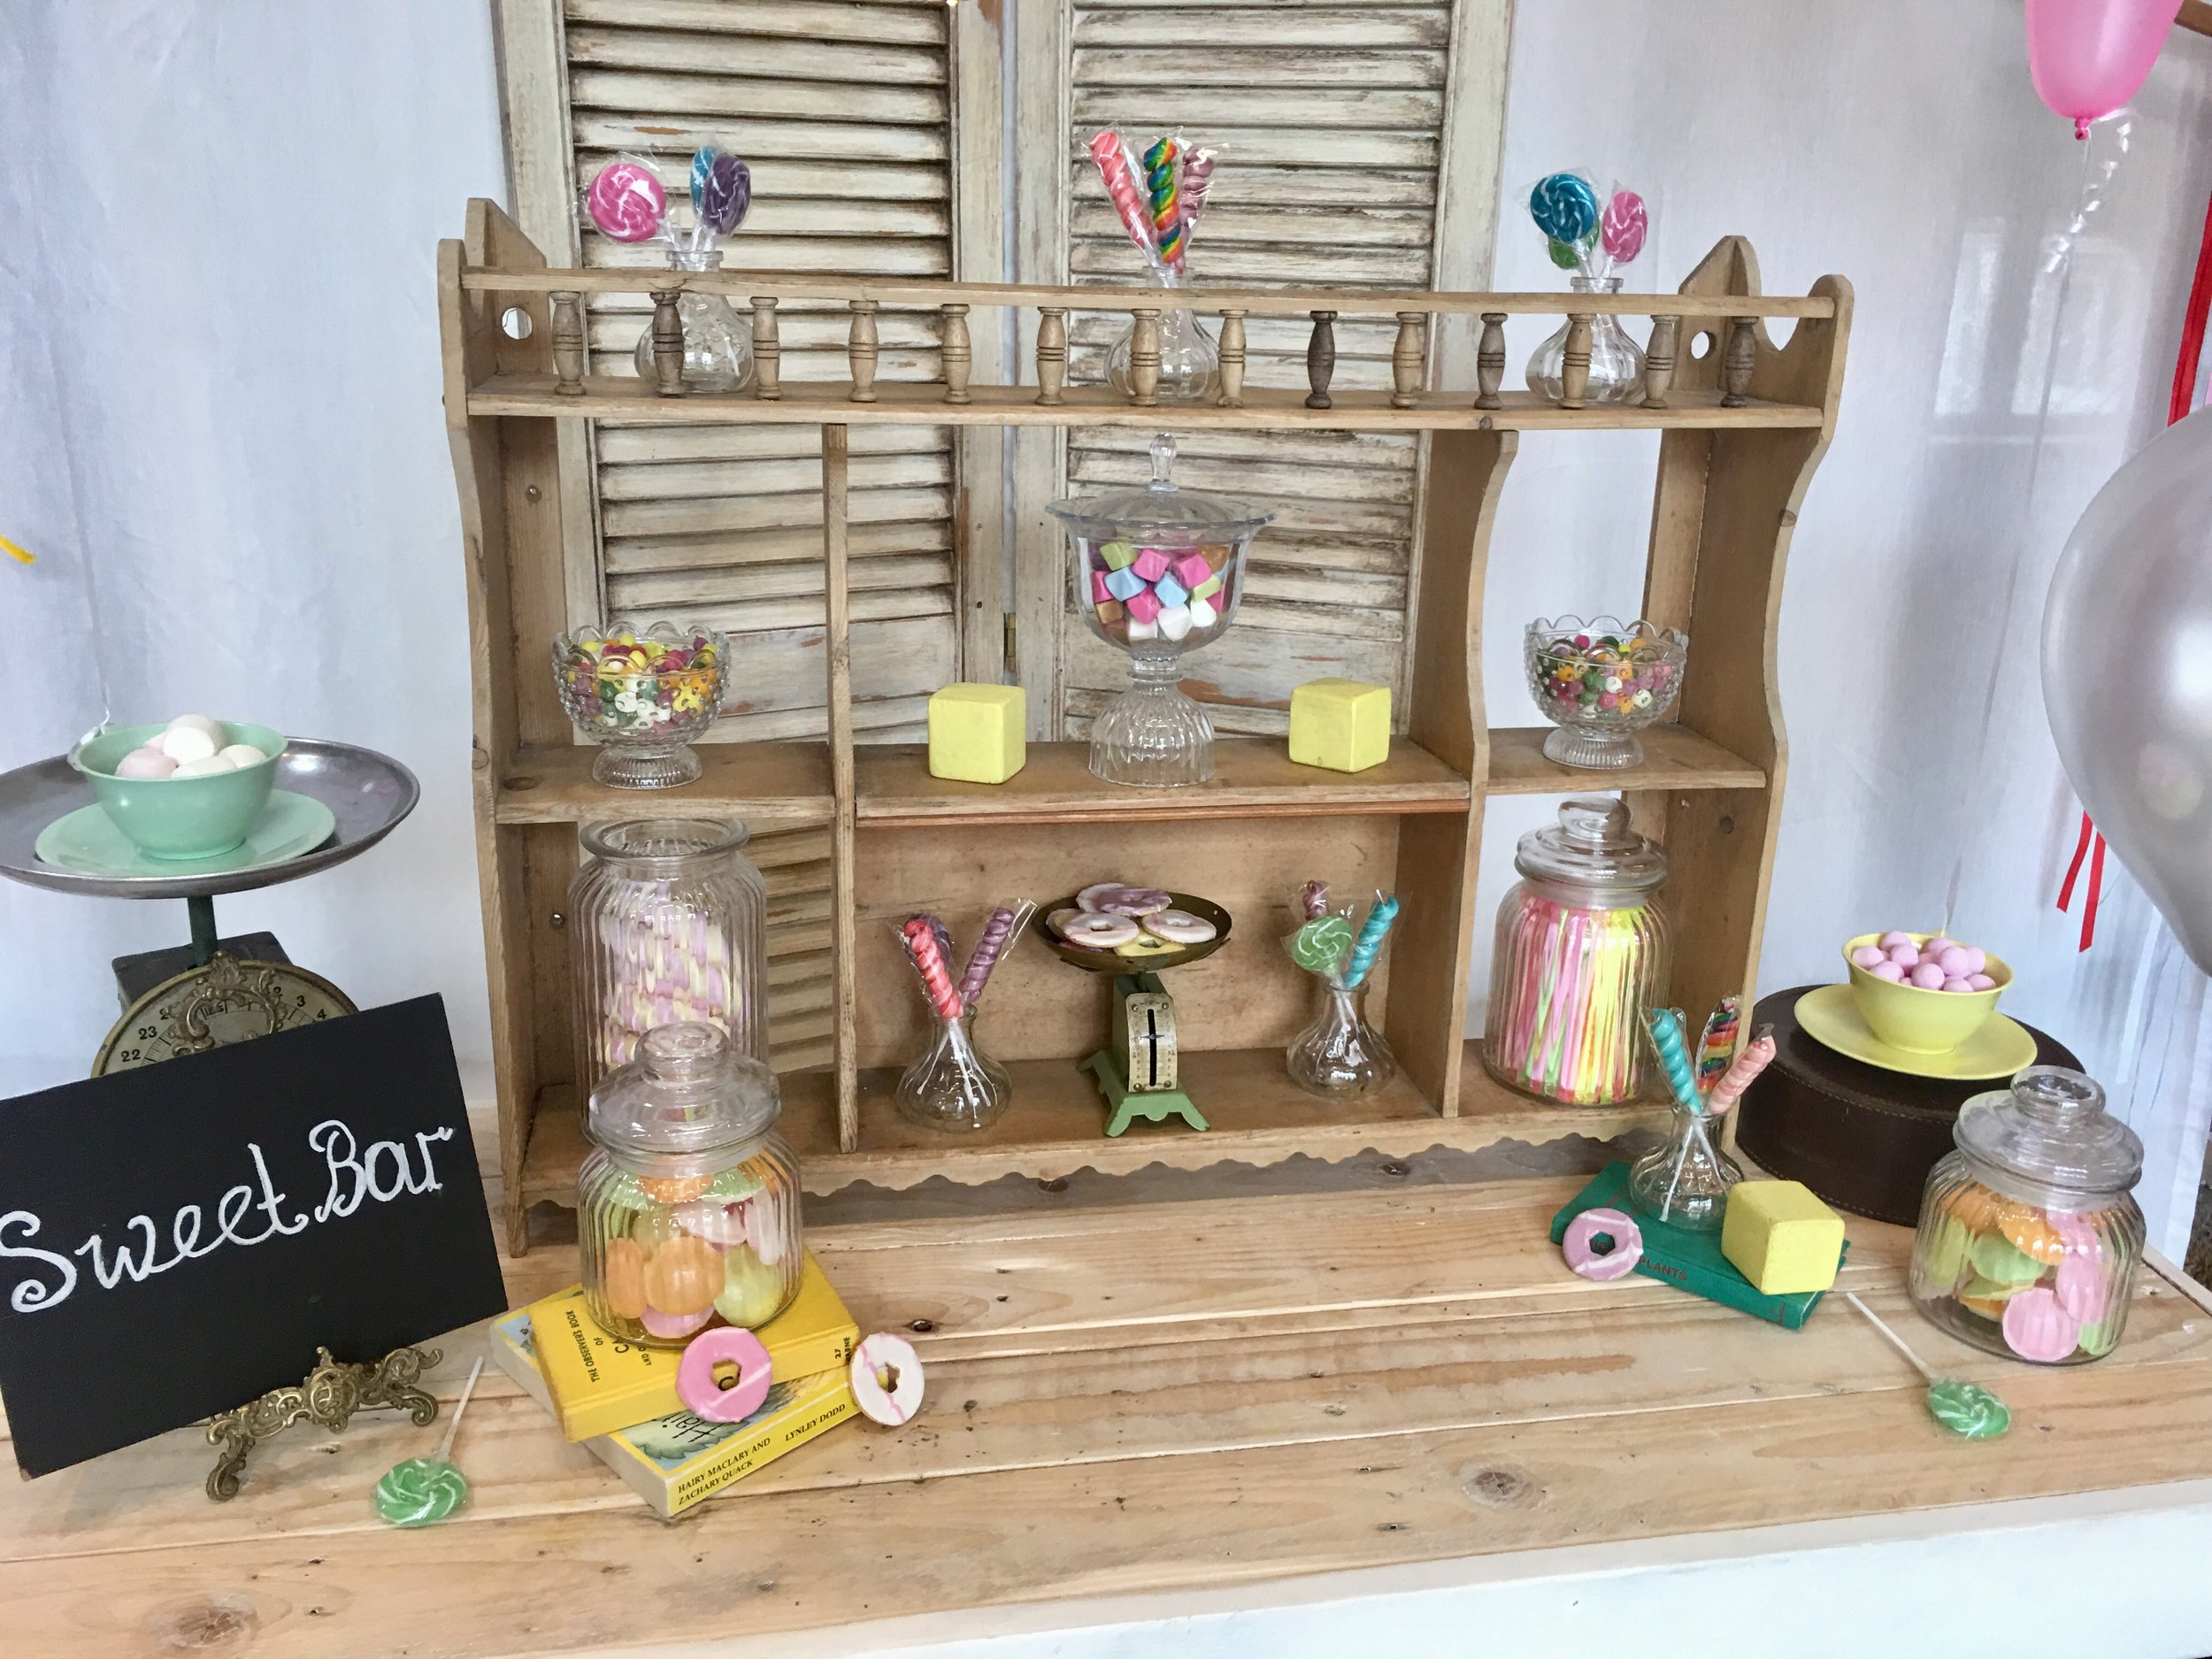 Shelving Unit £20 - jars & scales extra